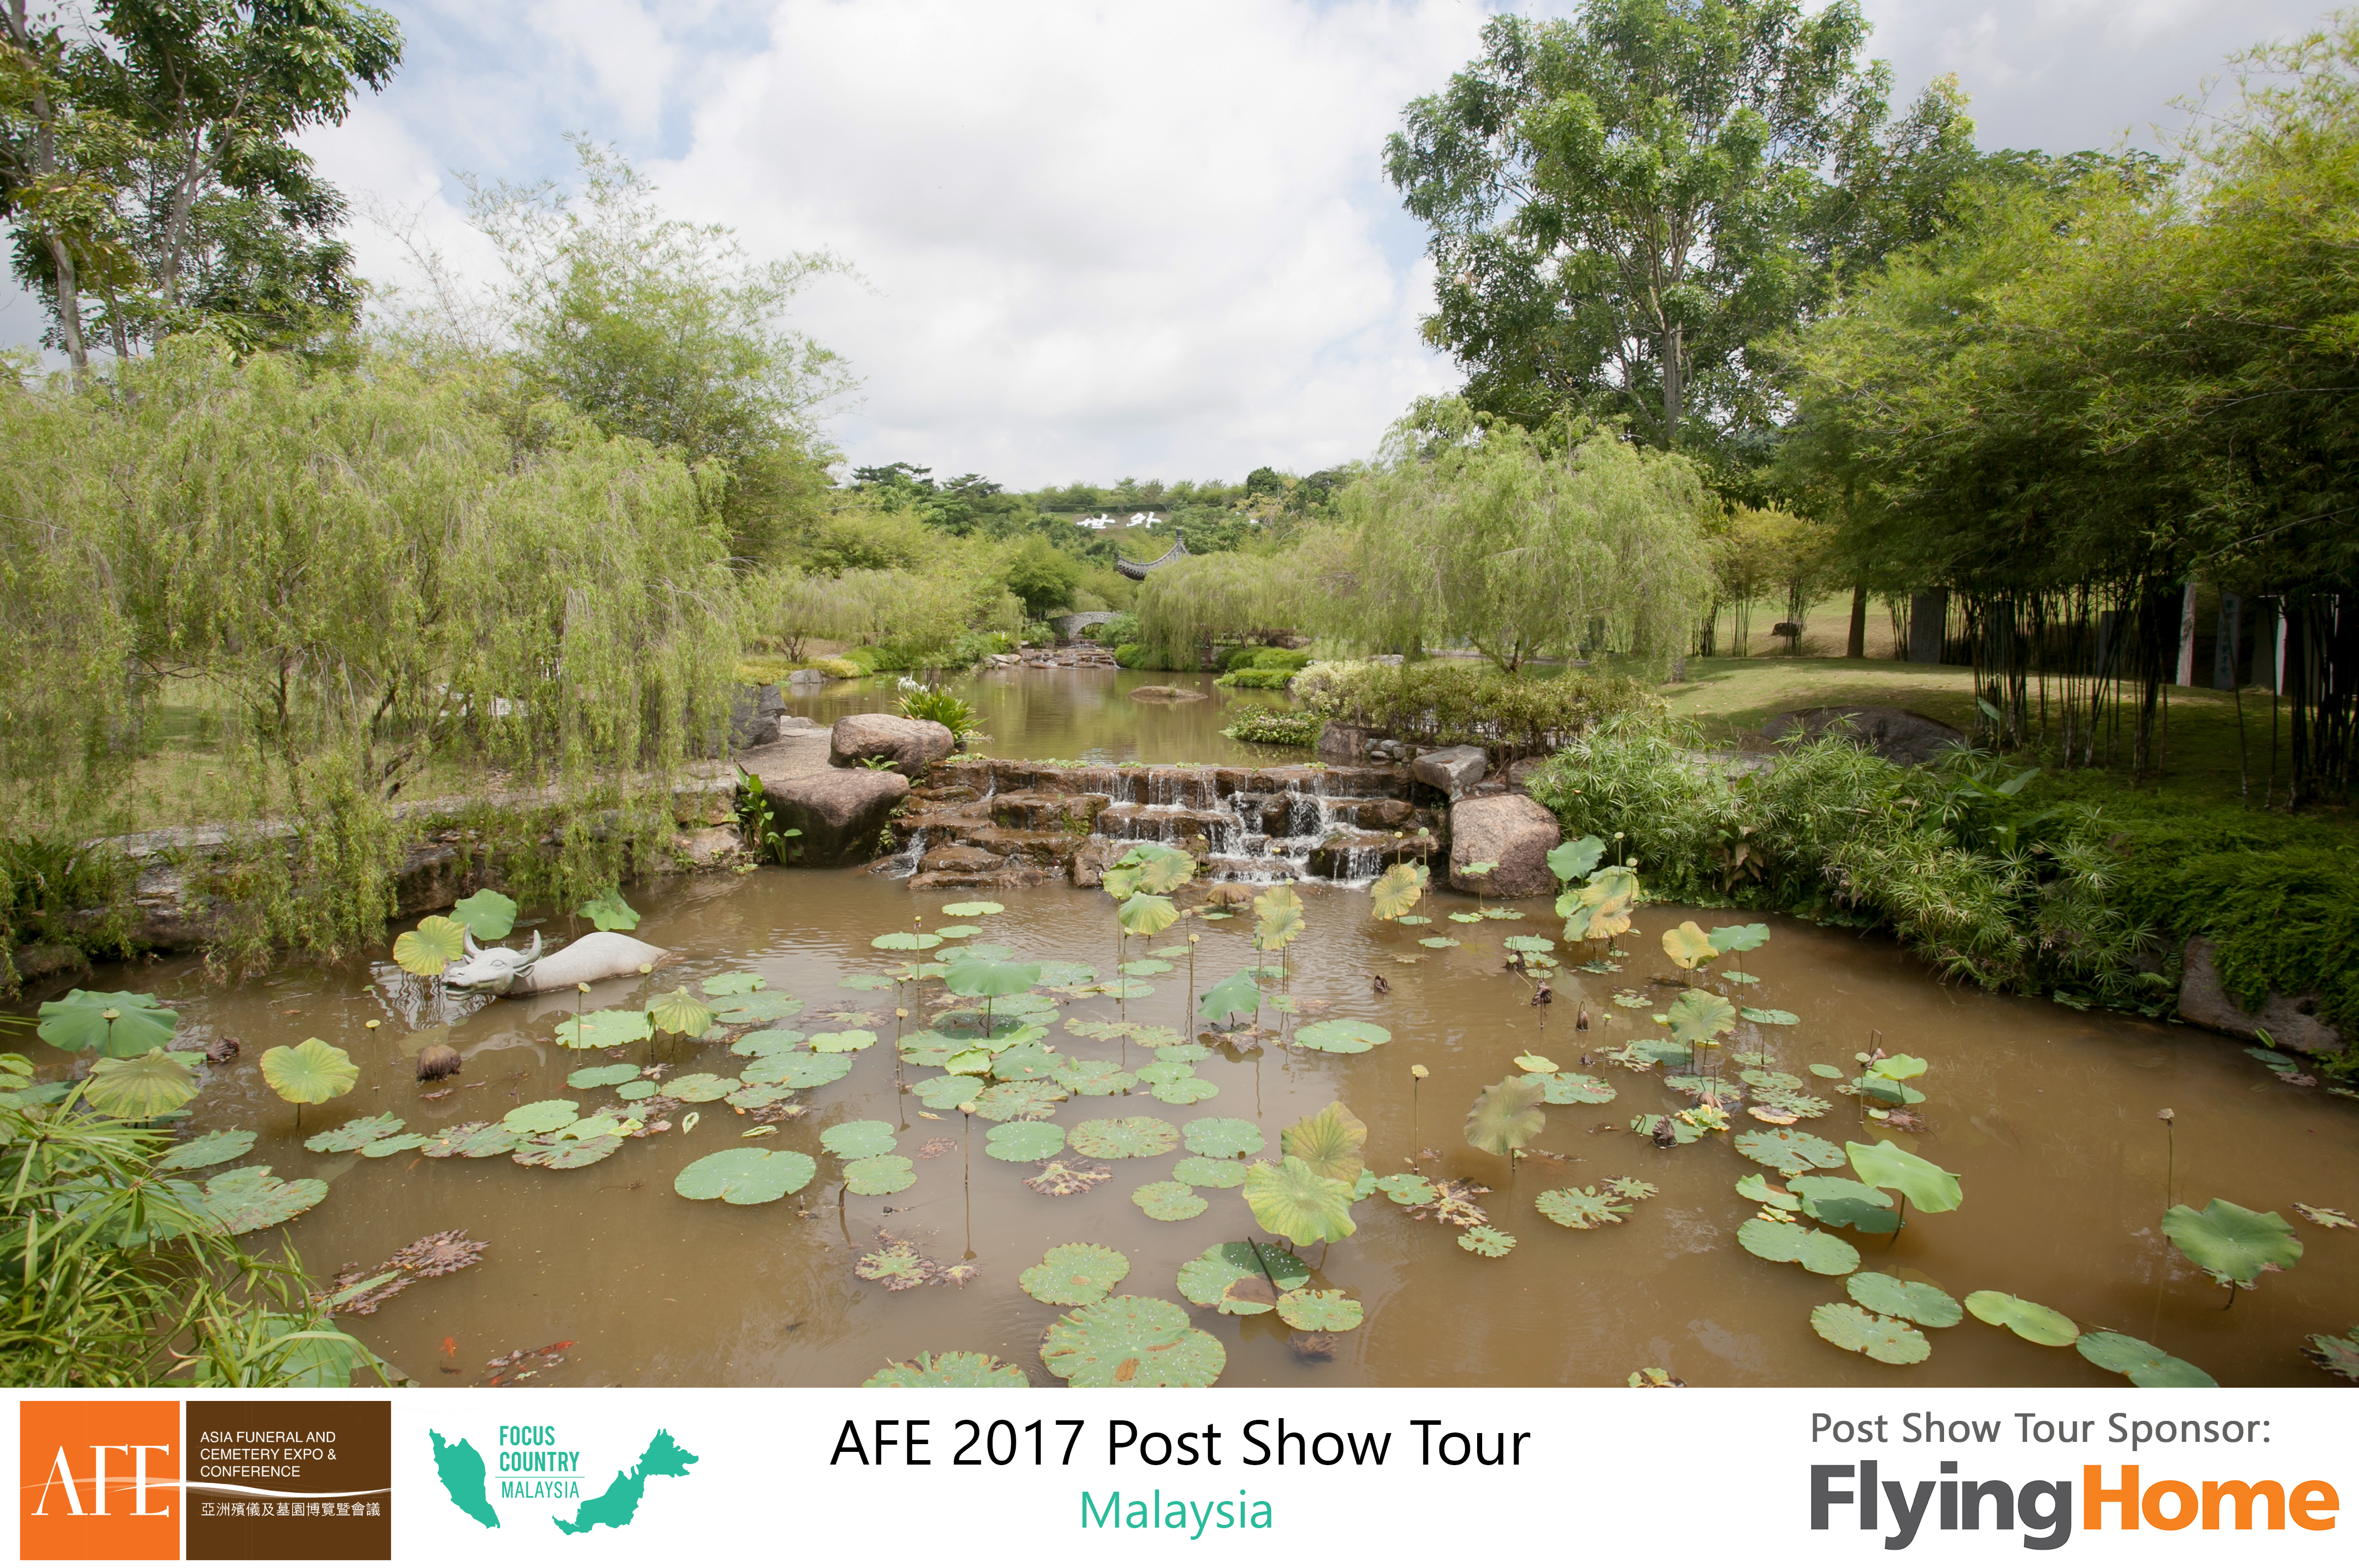 AFE Post Show Tour 2017 Day 2 - 62